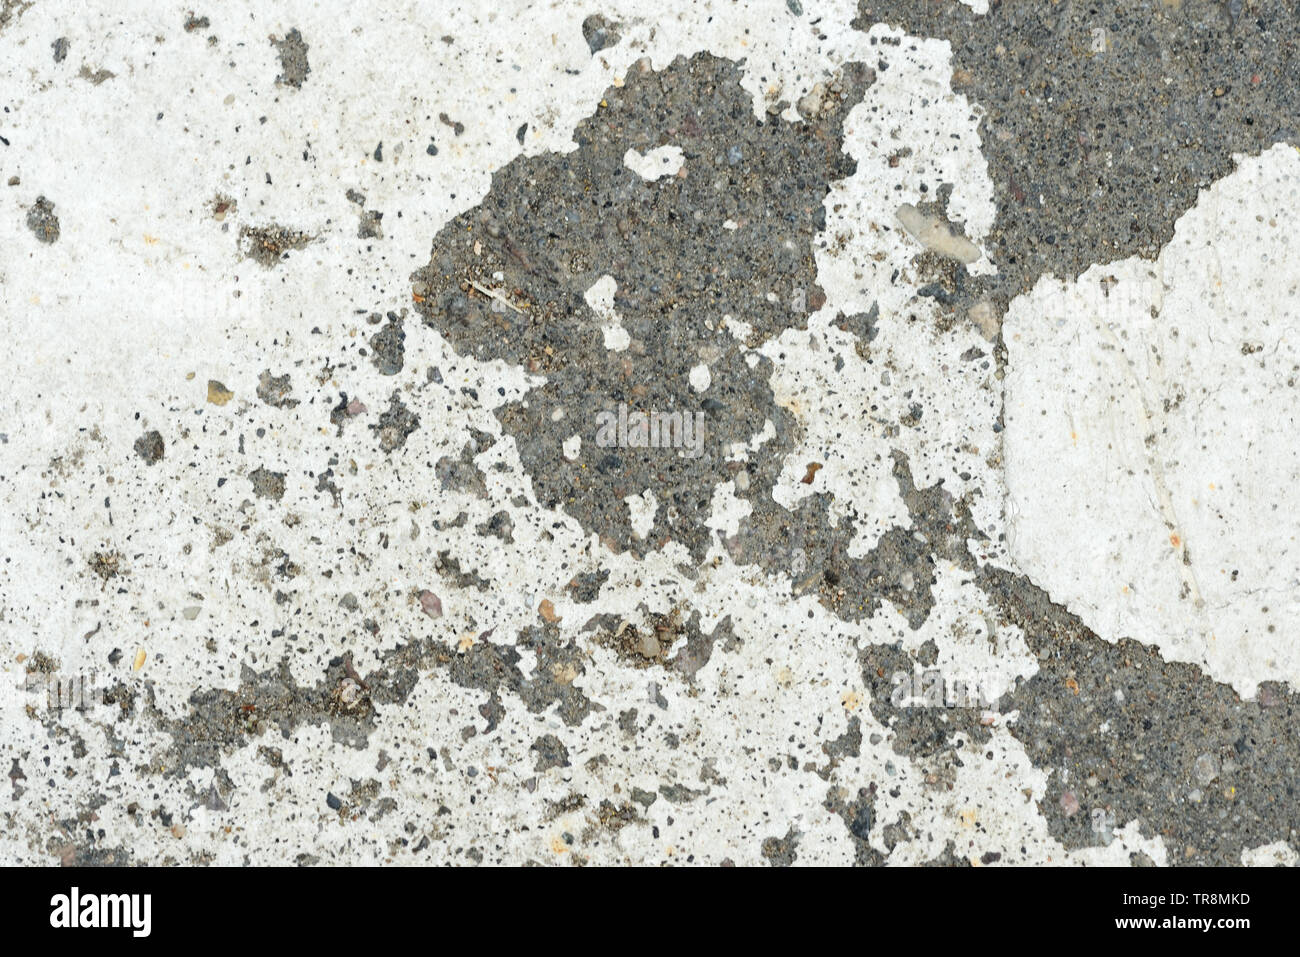 White paint on the old asphalt closeup  Abstract background